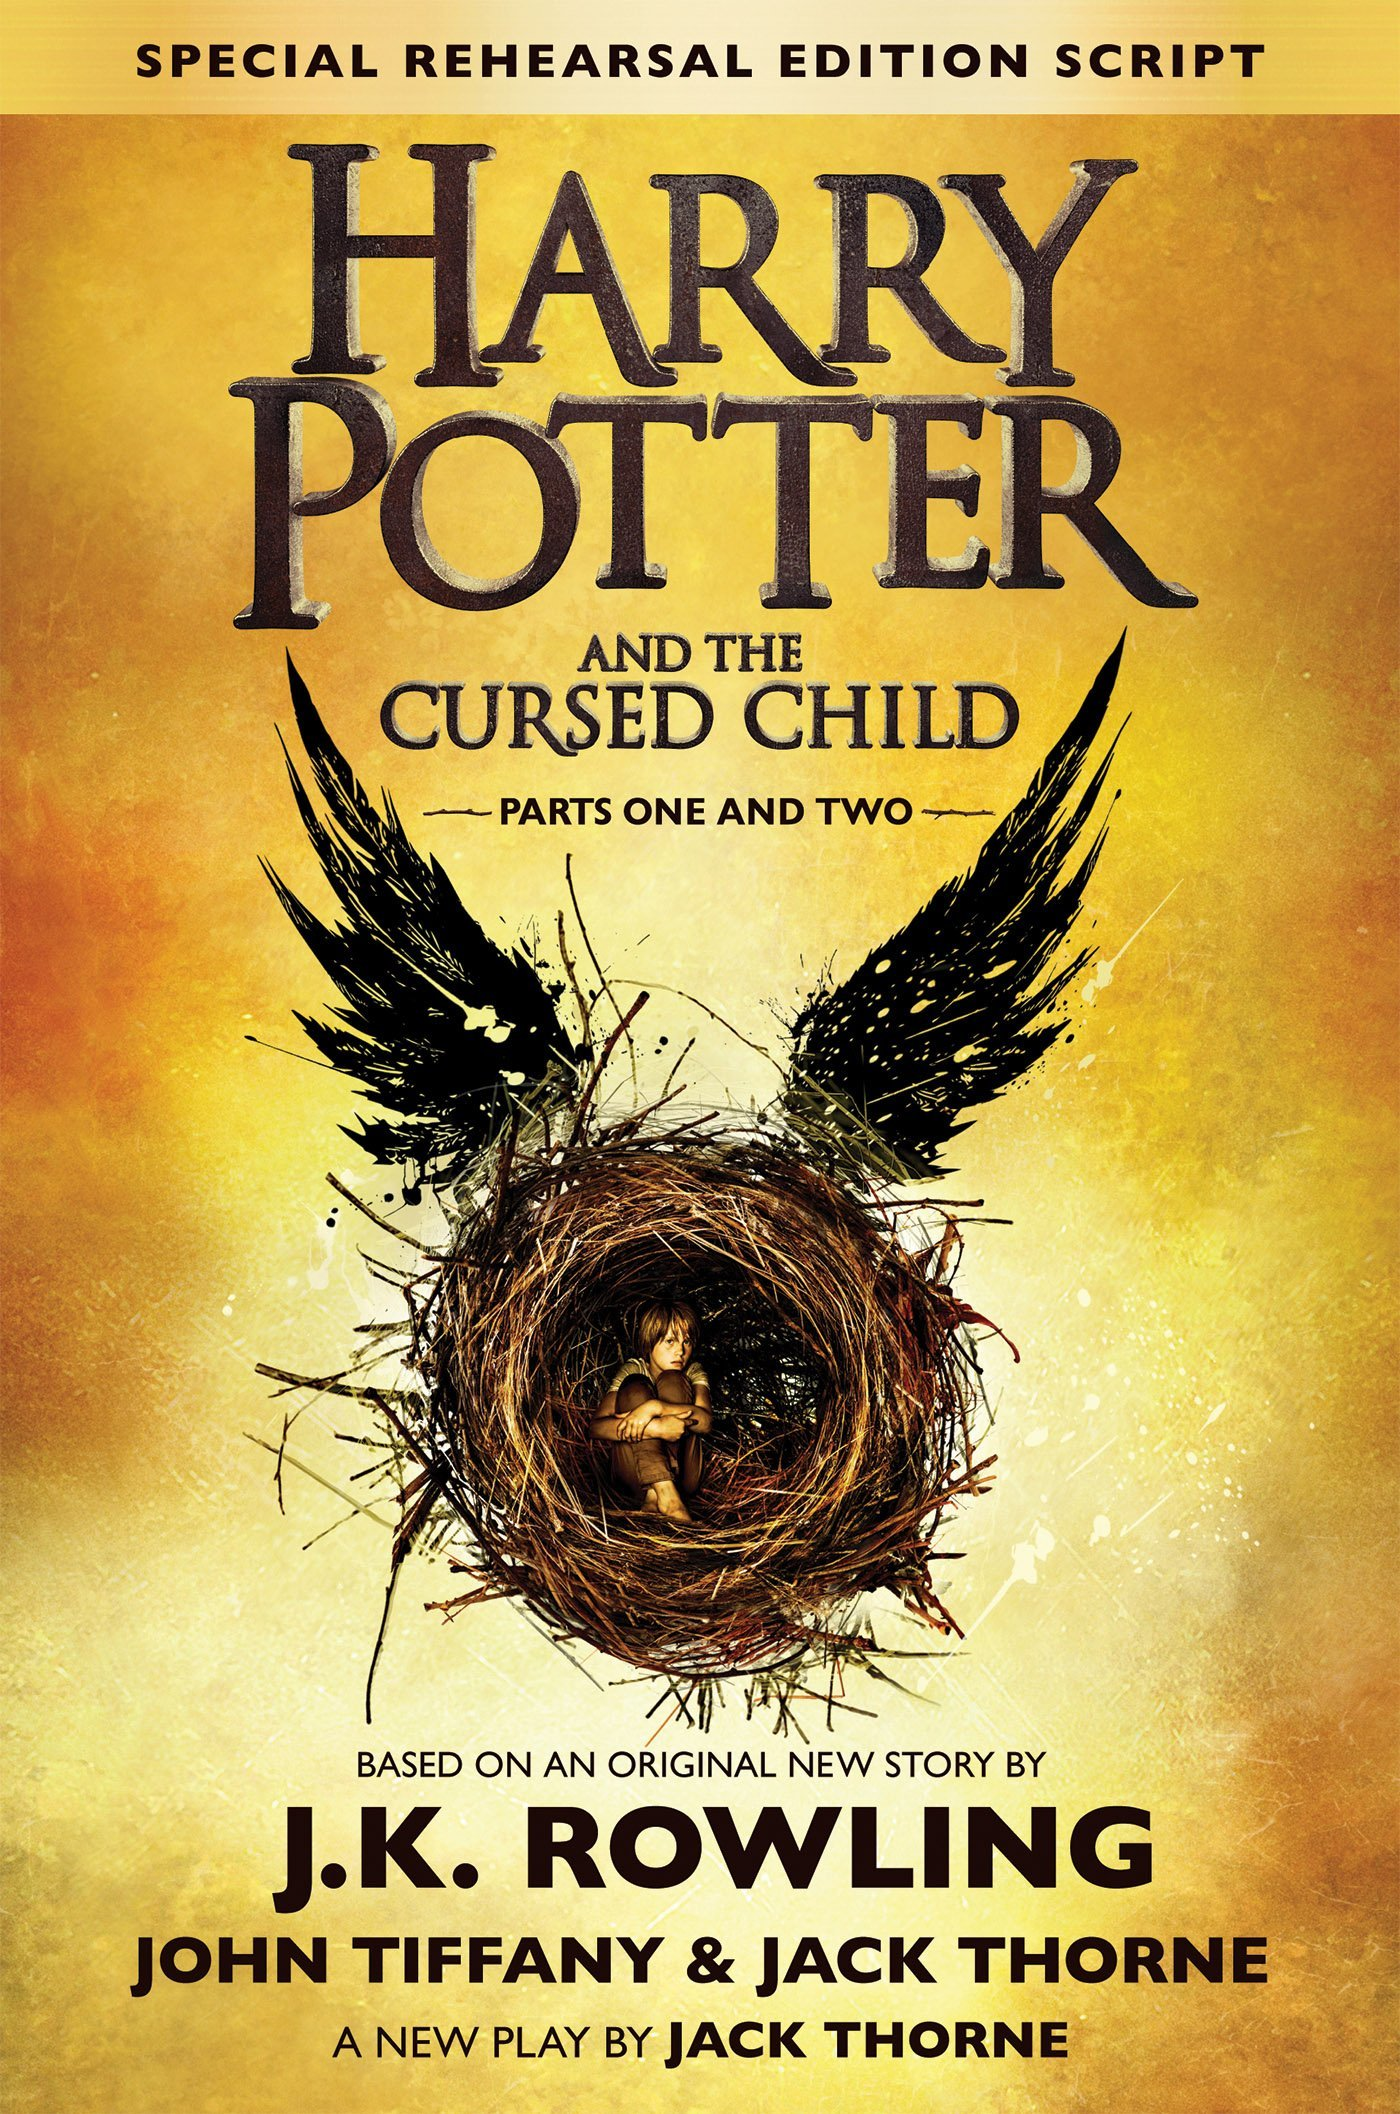 Harry Potter and The Cursed Child reviews, opinions and consumer feedback